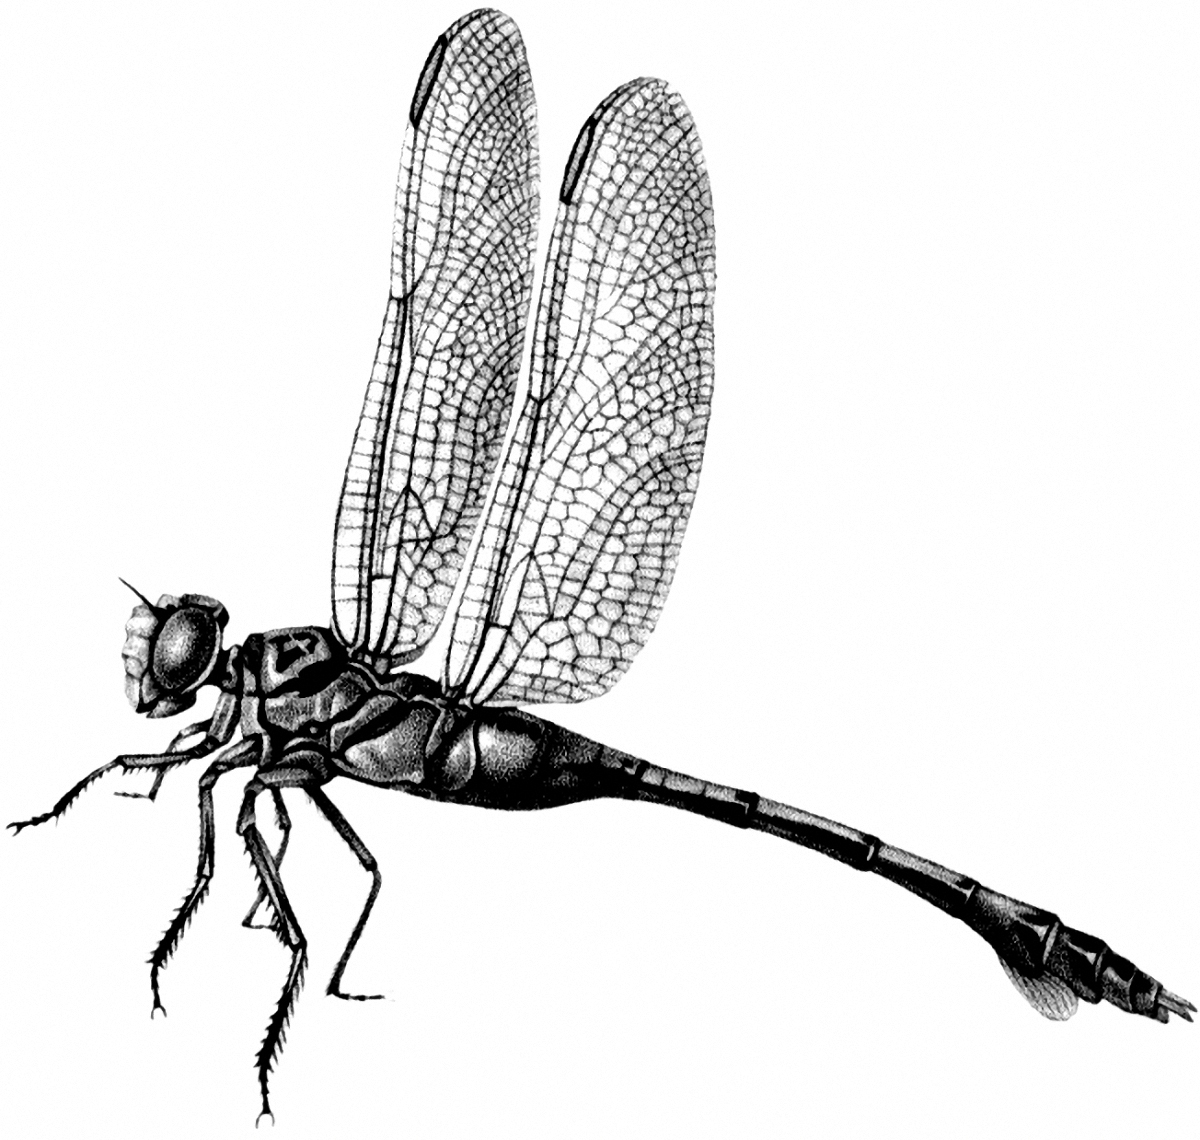 Vintage Dragonfly Image - Black and White! - The Graphics Fairy